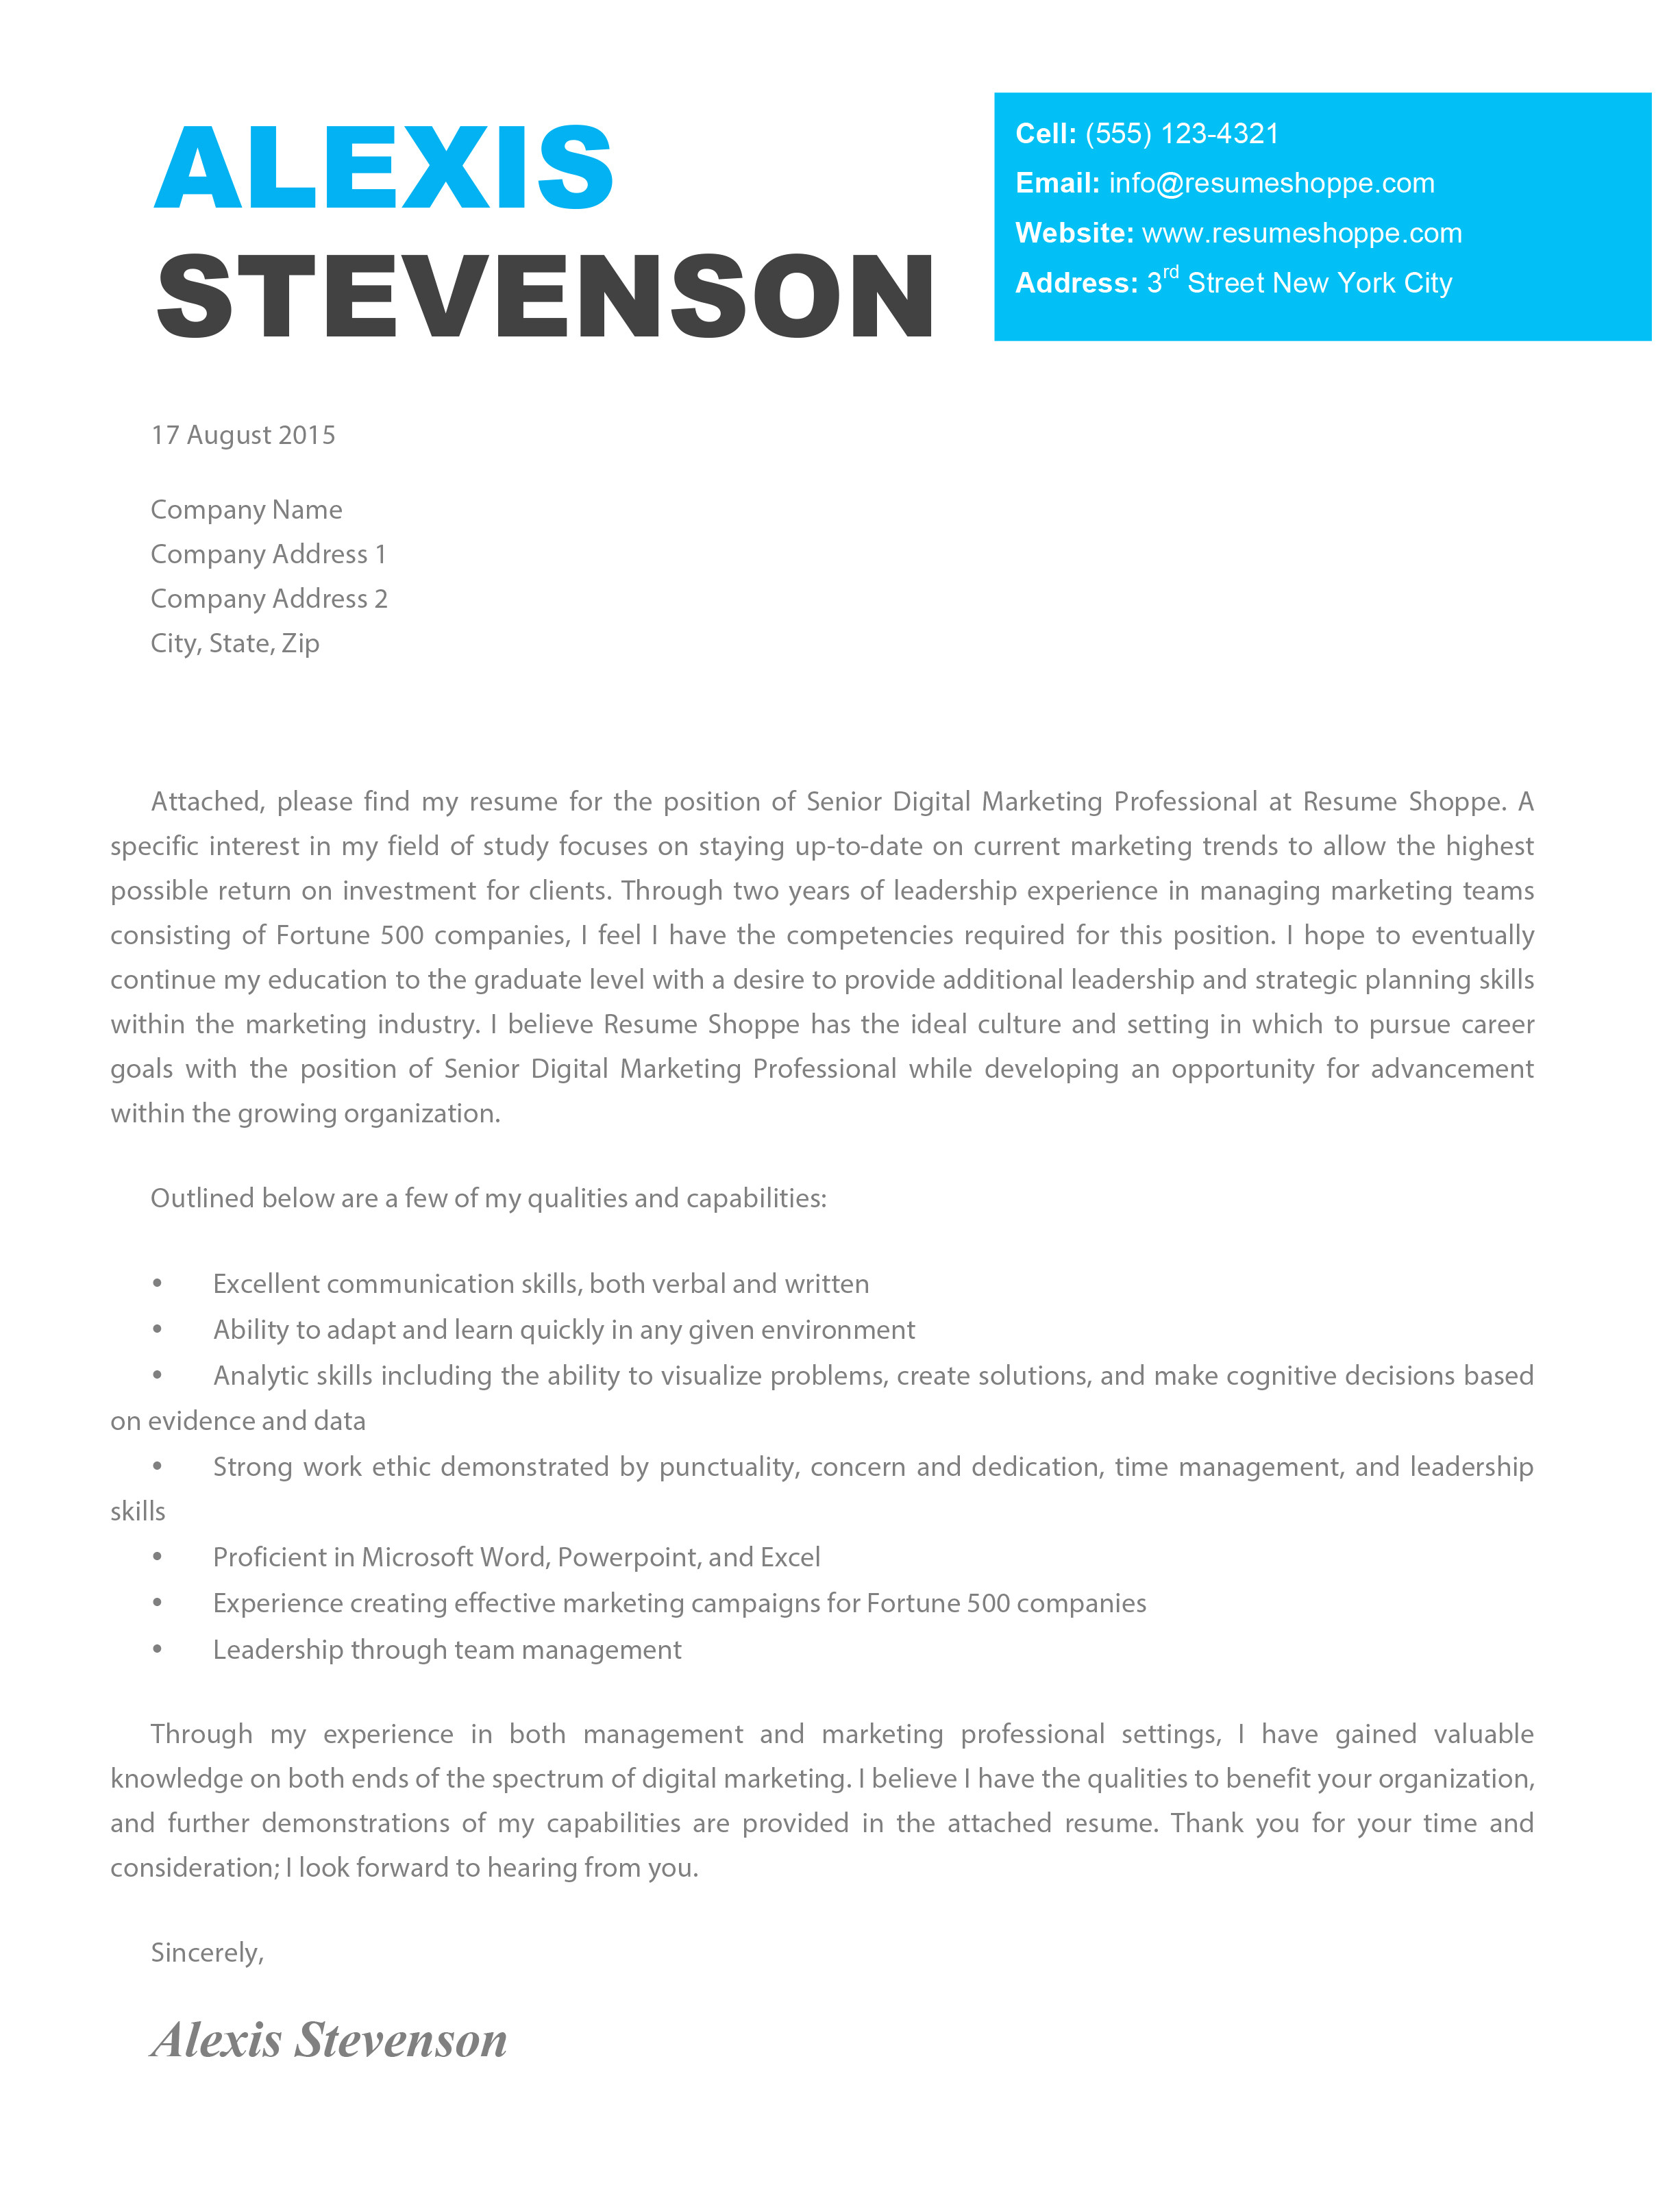 Creative Cover Letters for Marketing the Alexis Cover Letter Creative Cover Letter